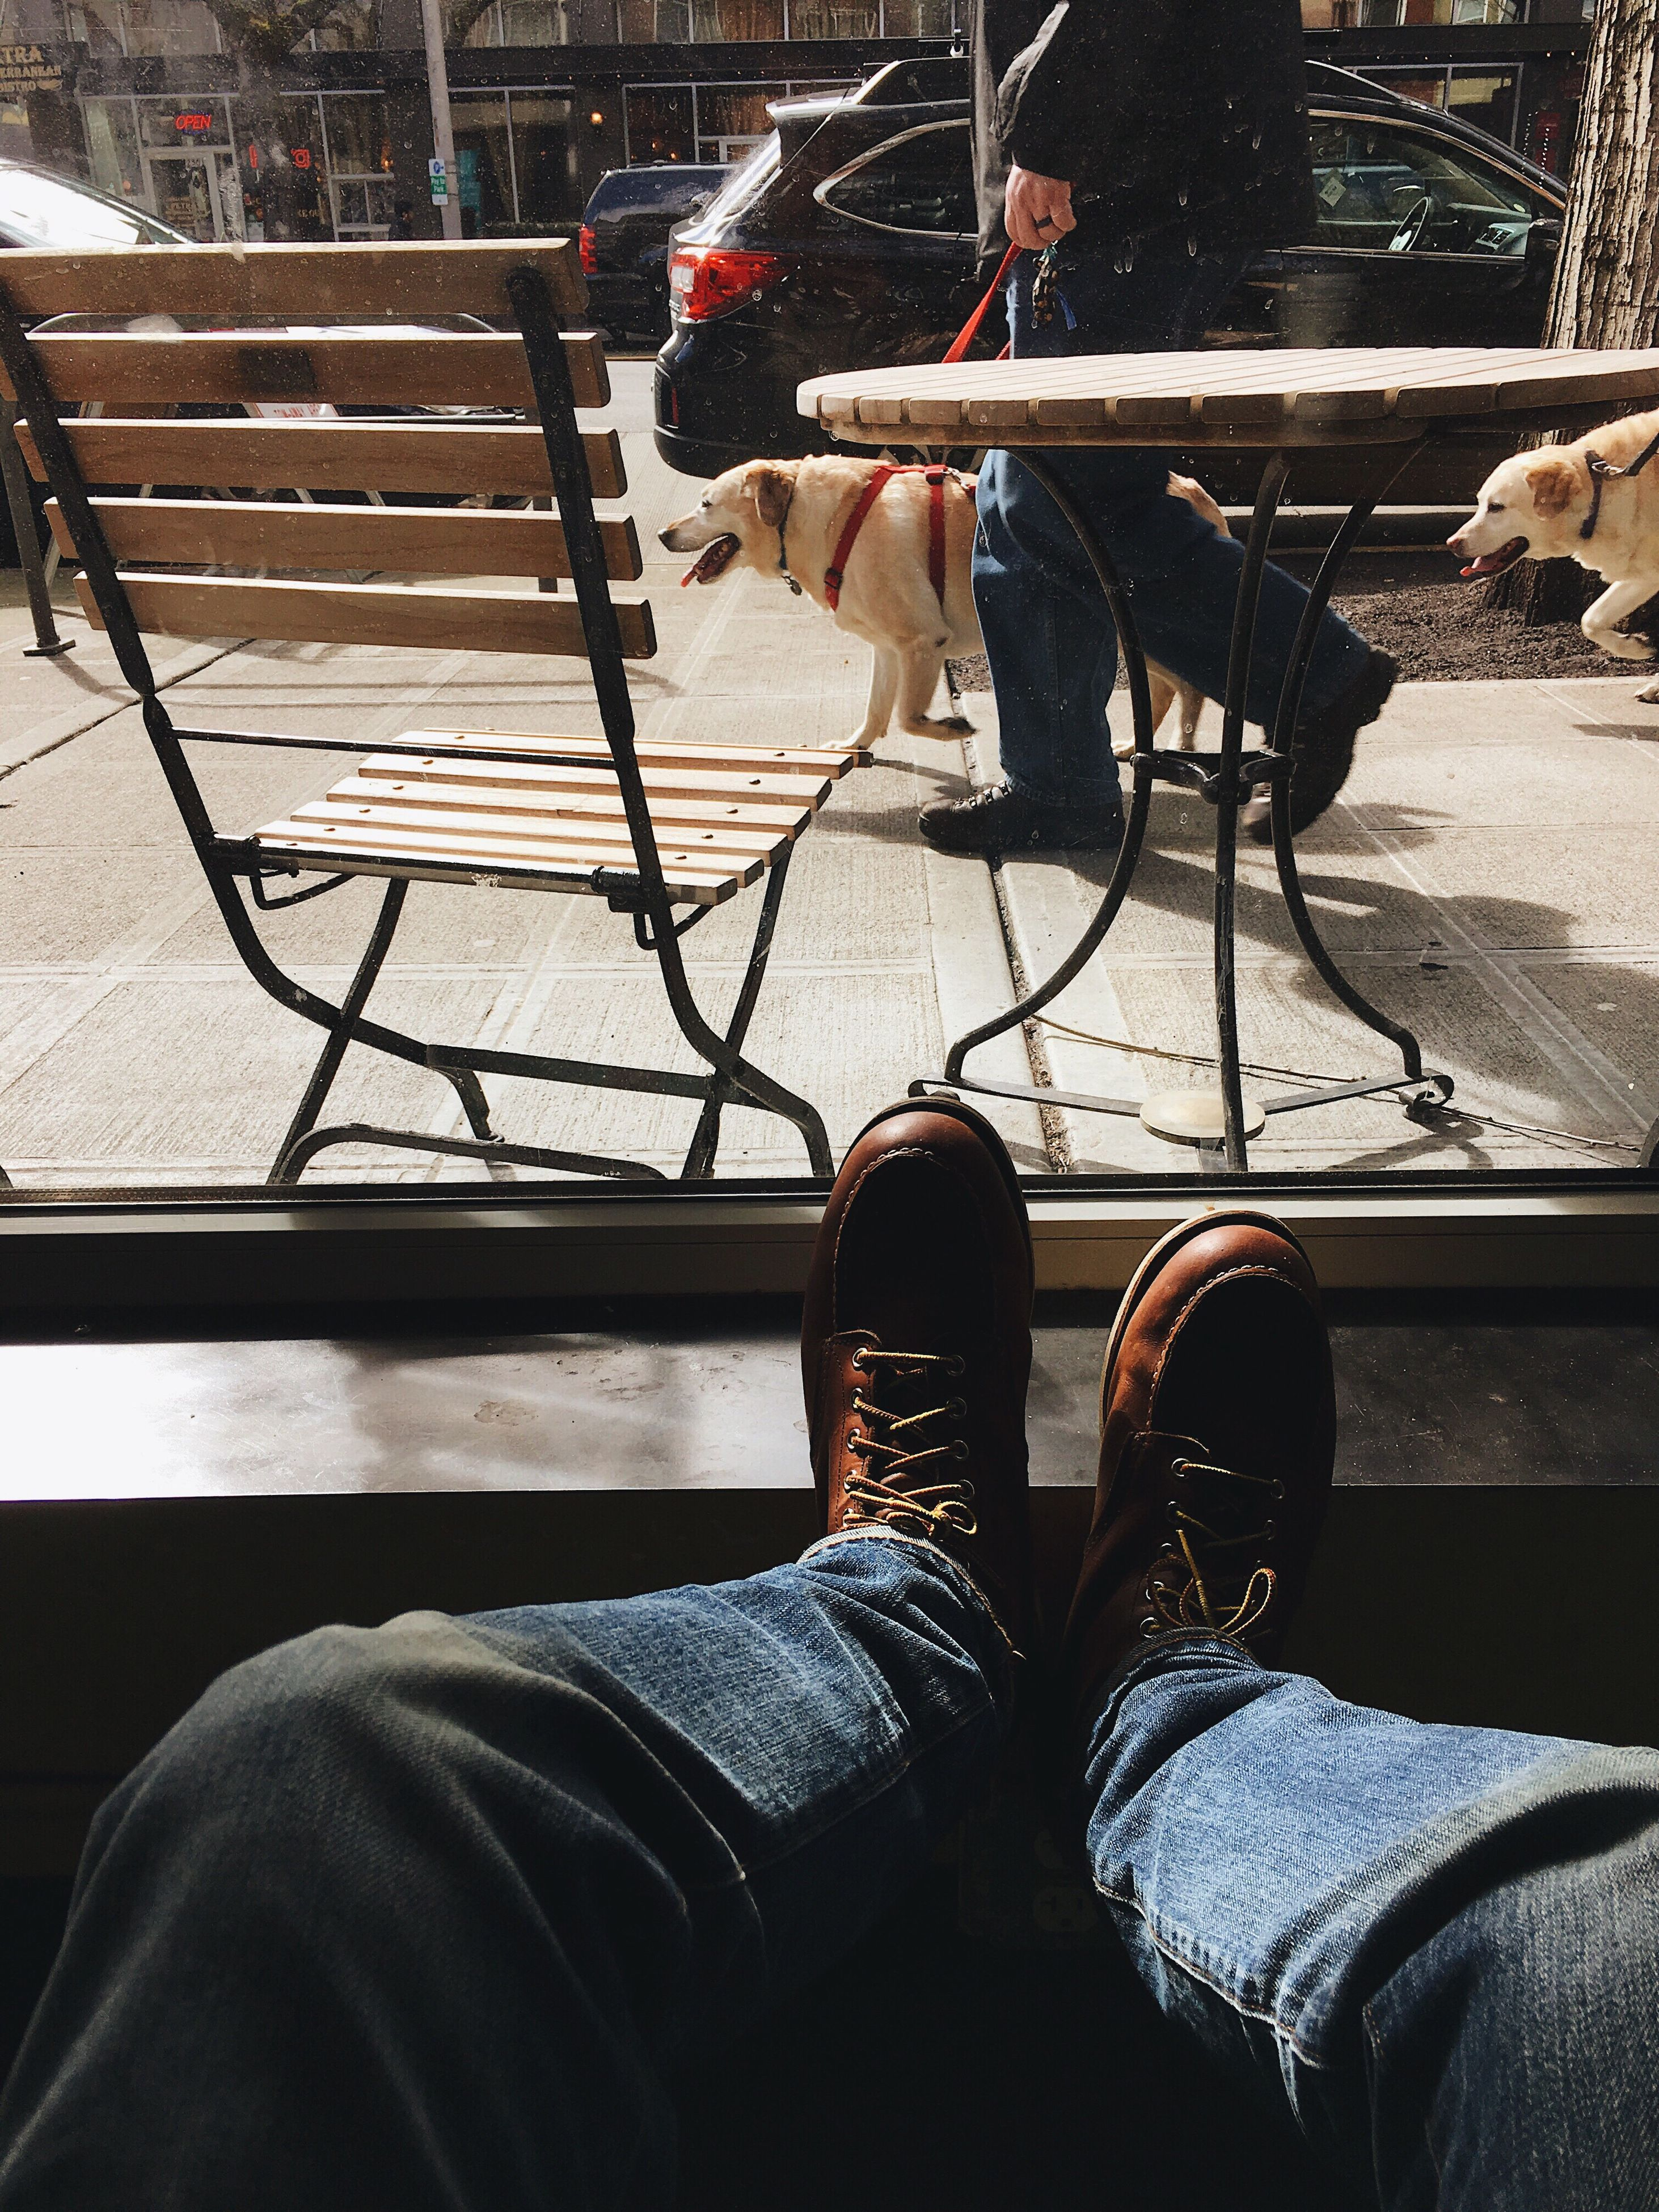 human leg, low section, real people, men, transportation, sitting, human body part, adults only, outdoors, only men, day, people, adult